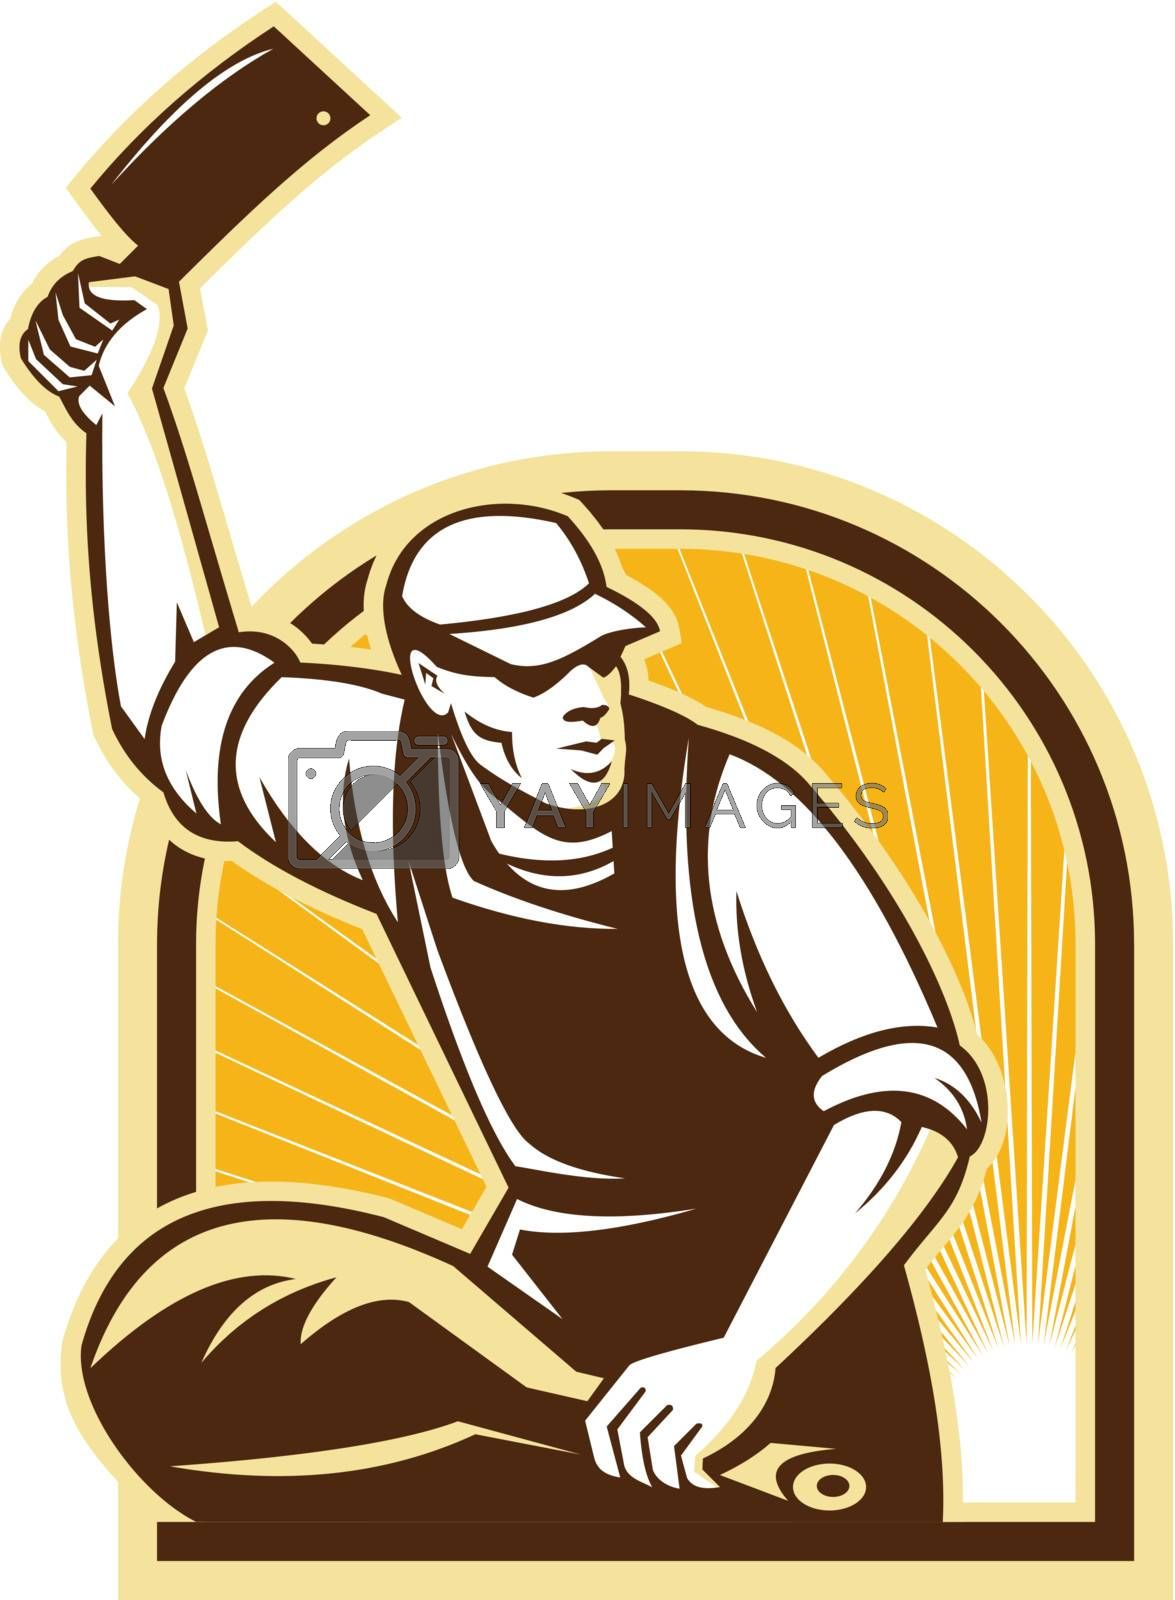 Illustration of butcher with meat cleaver cutting leg of ham done in retro style.